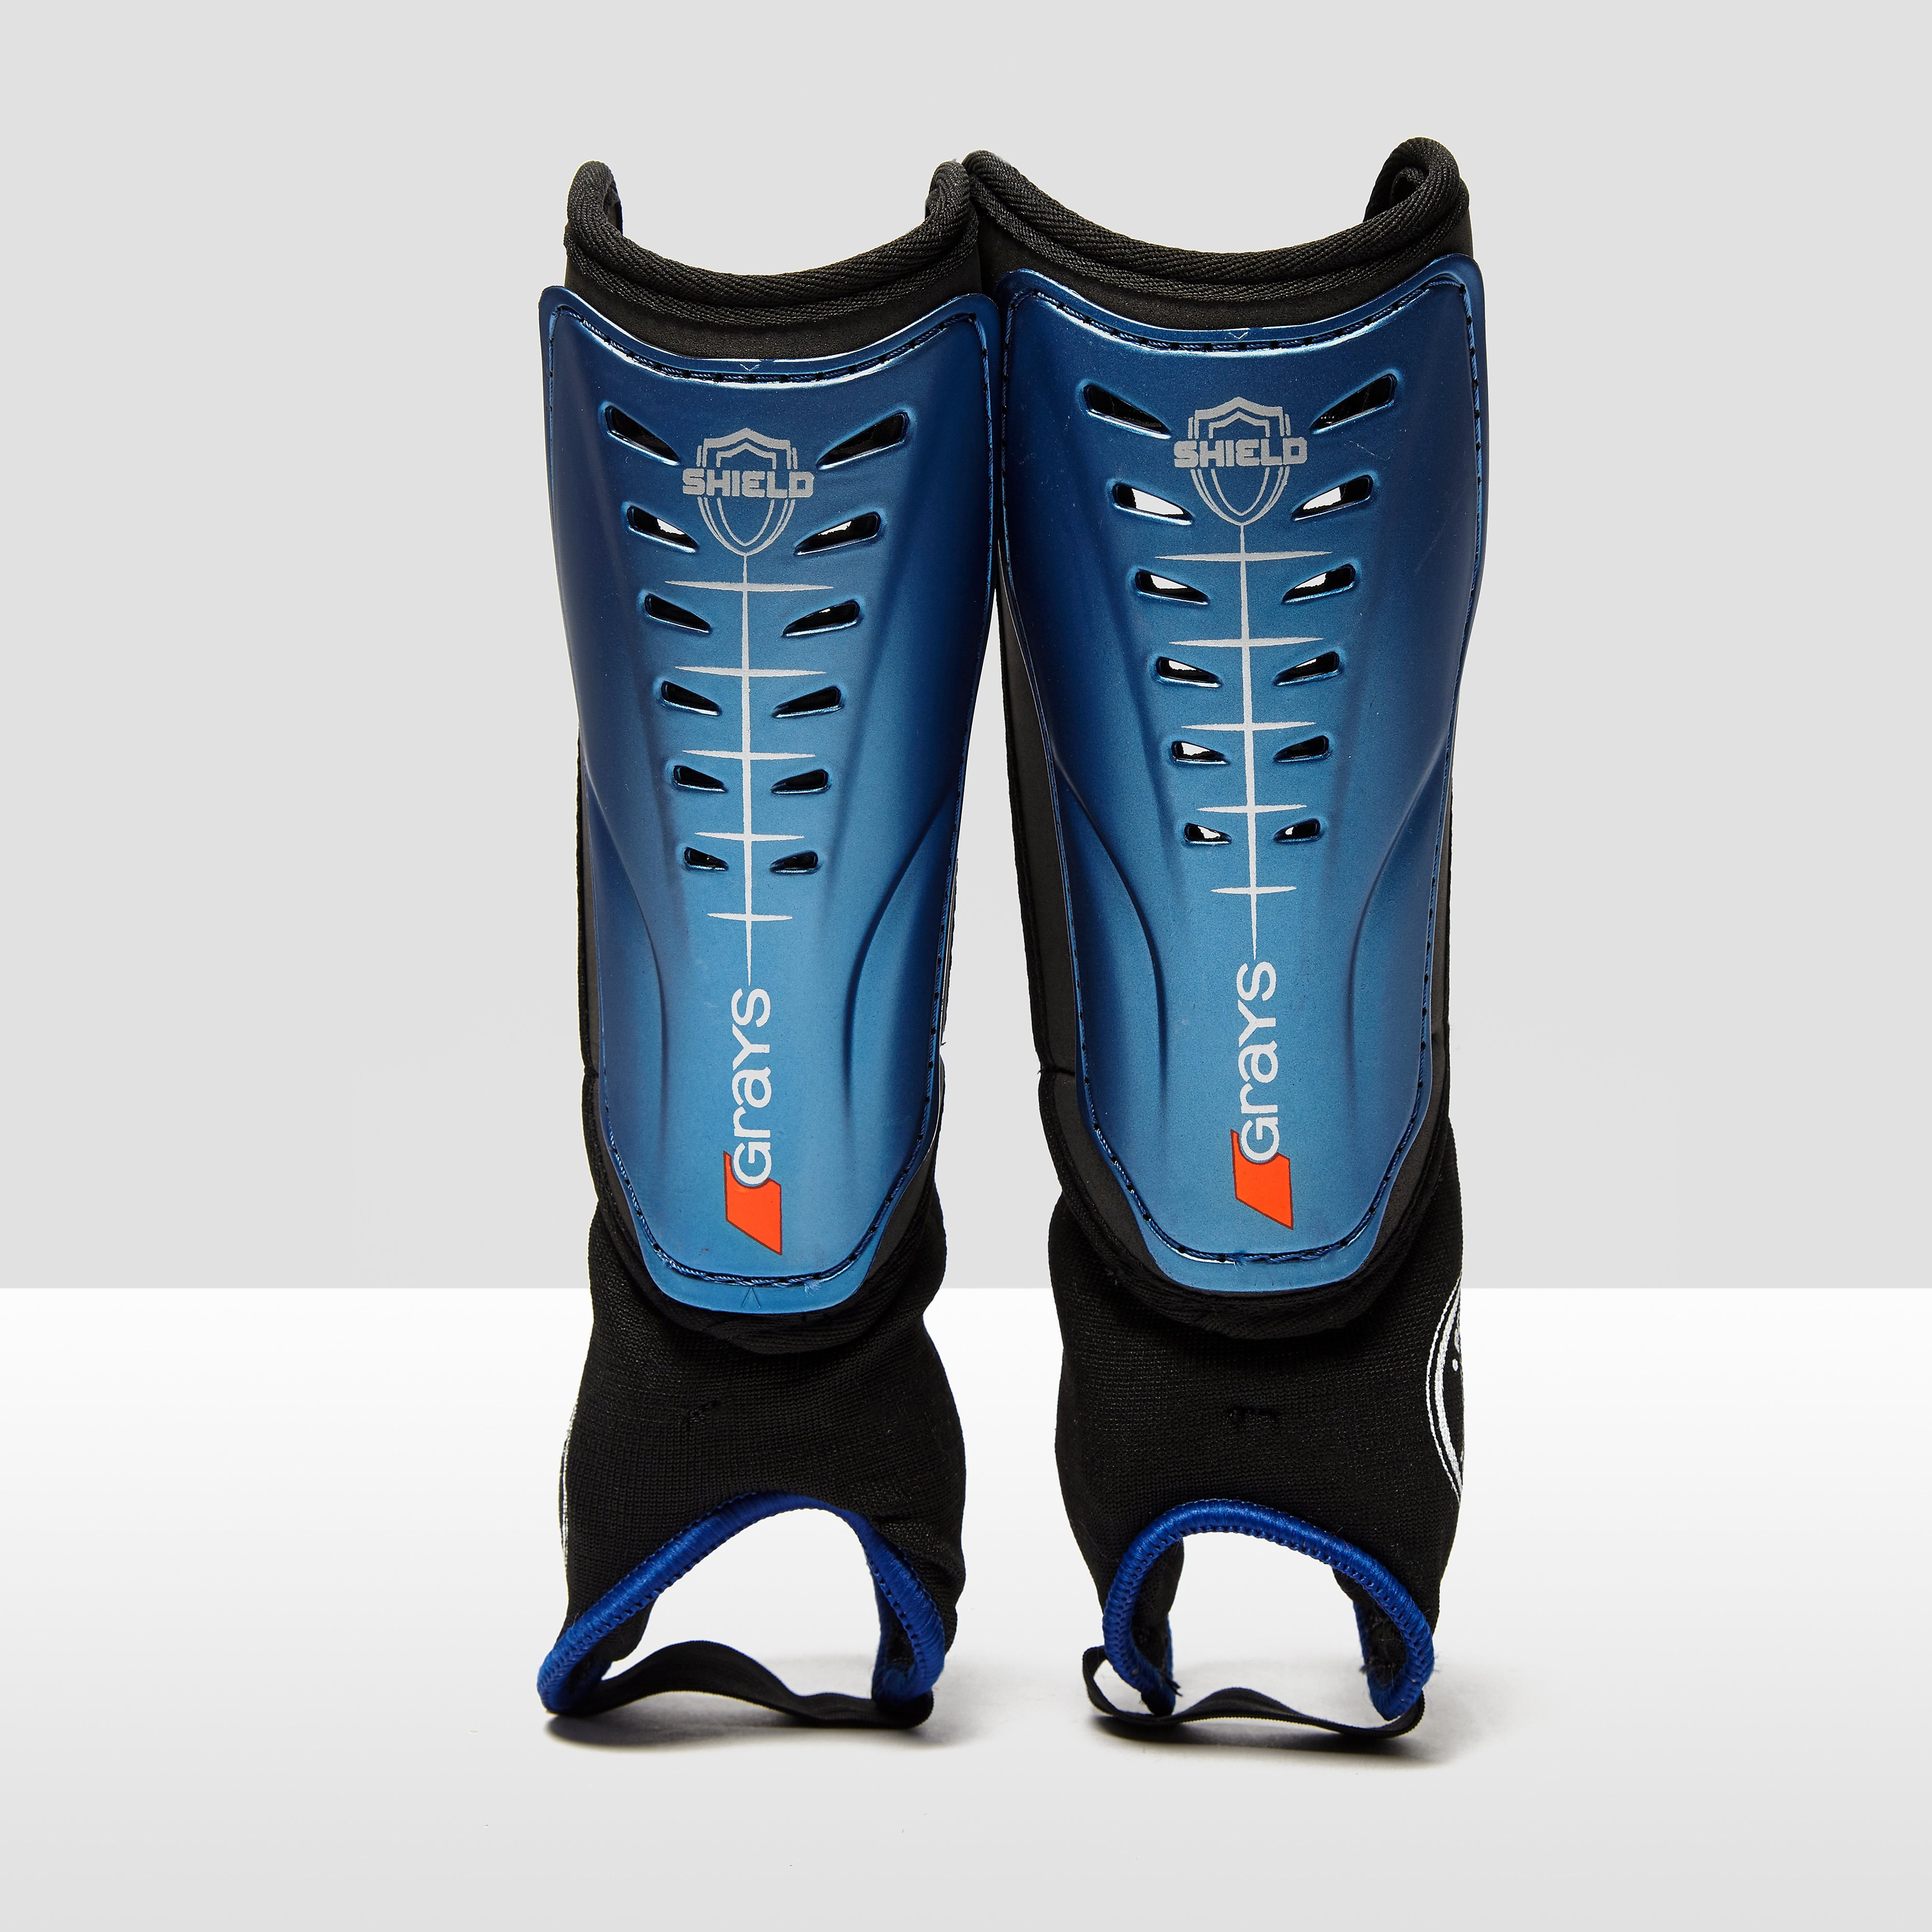 Grays Shield Shin Guards